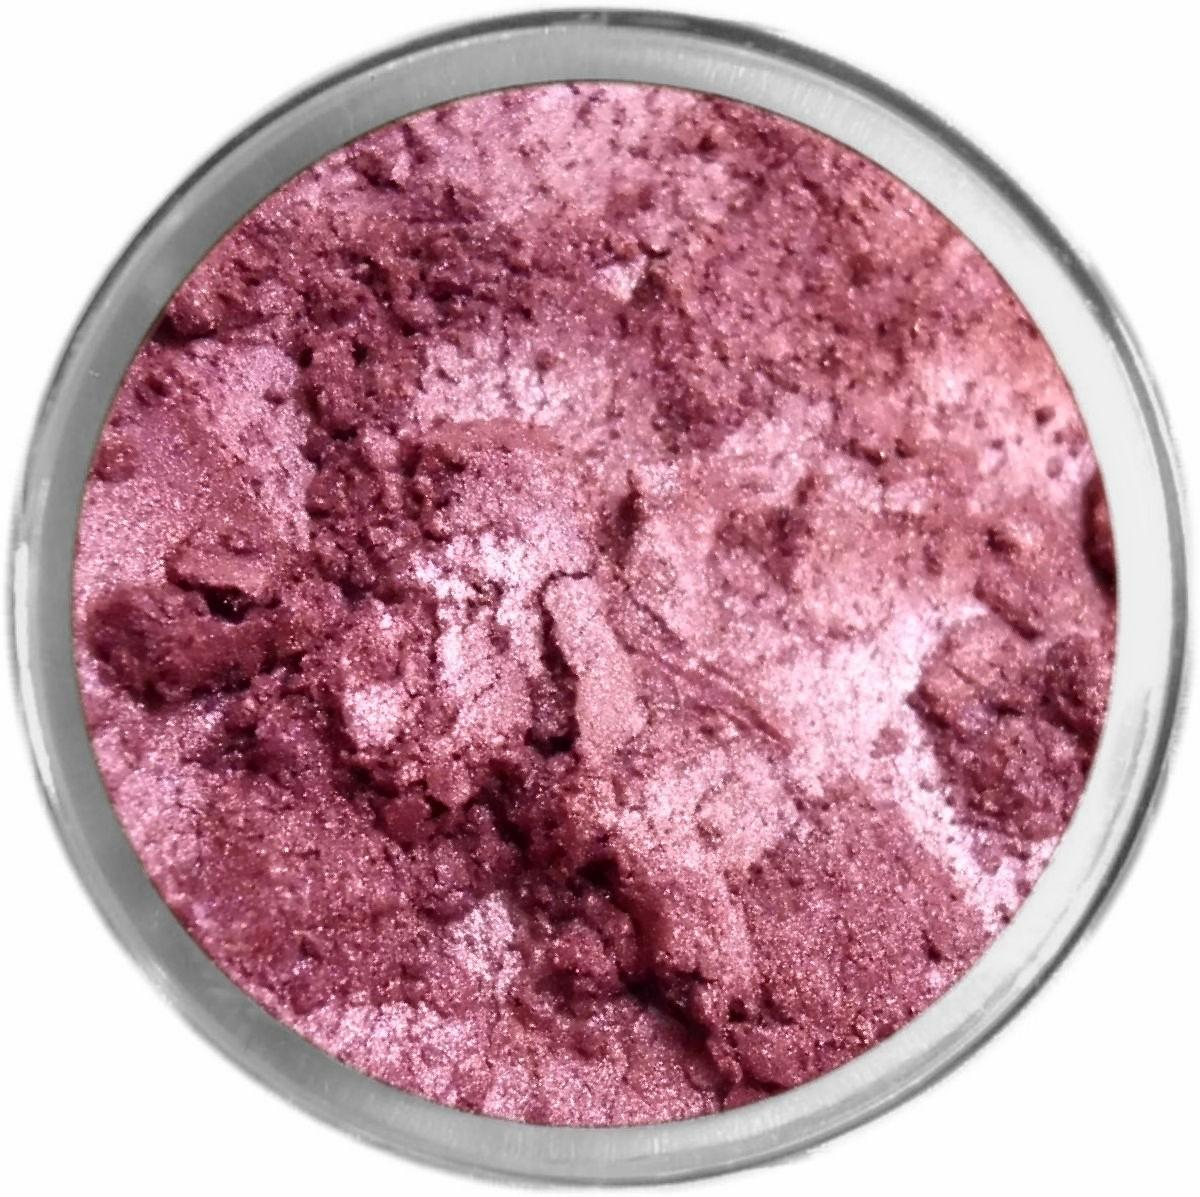 AMBIENT loose powder mineral multi-use color makeup bare earth pigment minerals